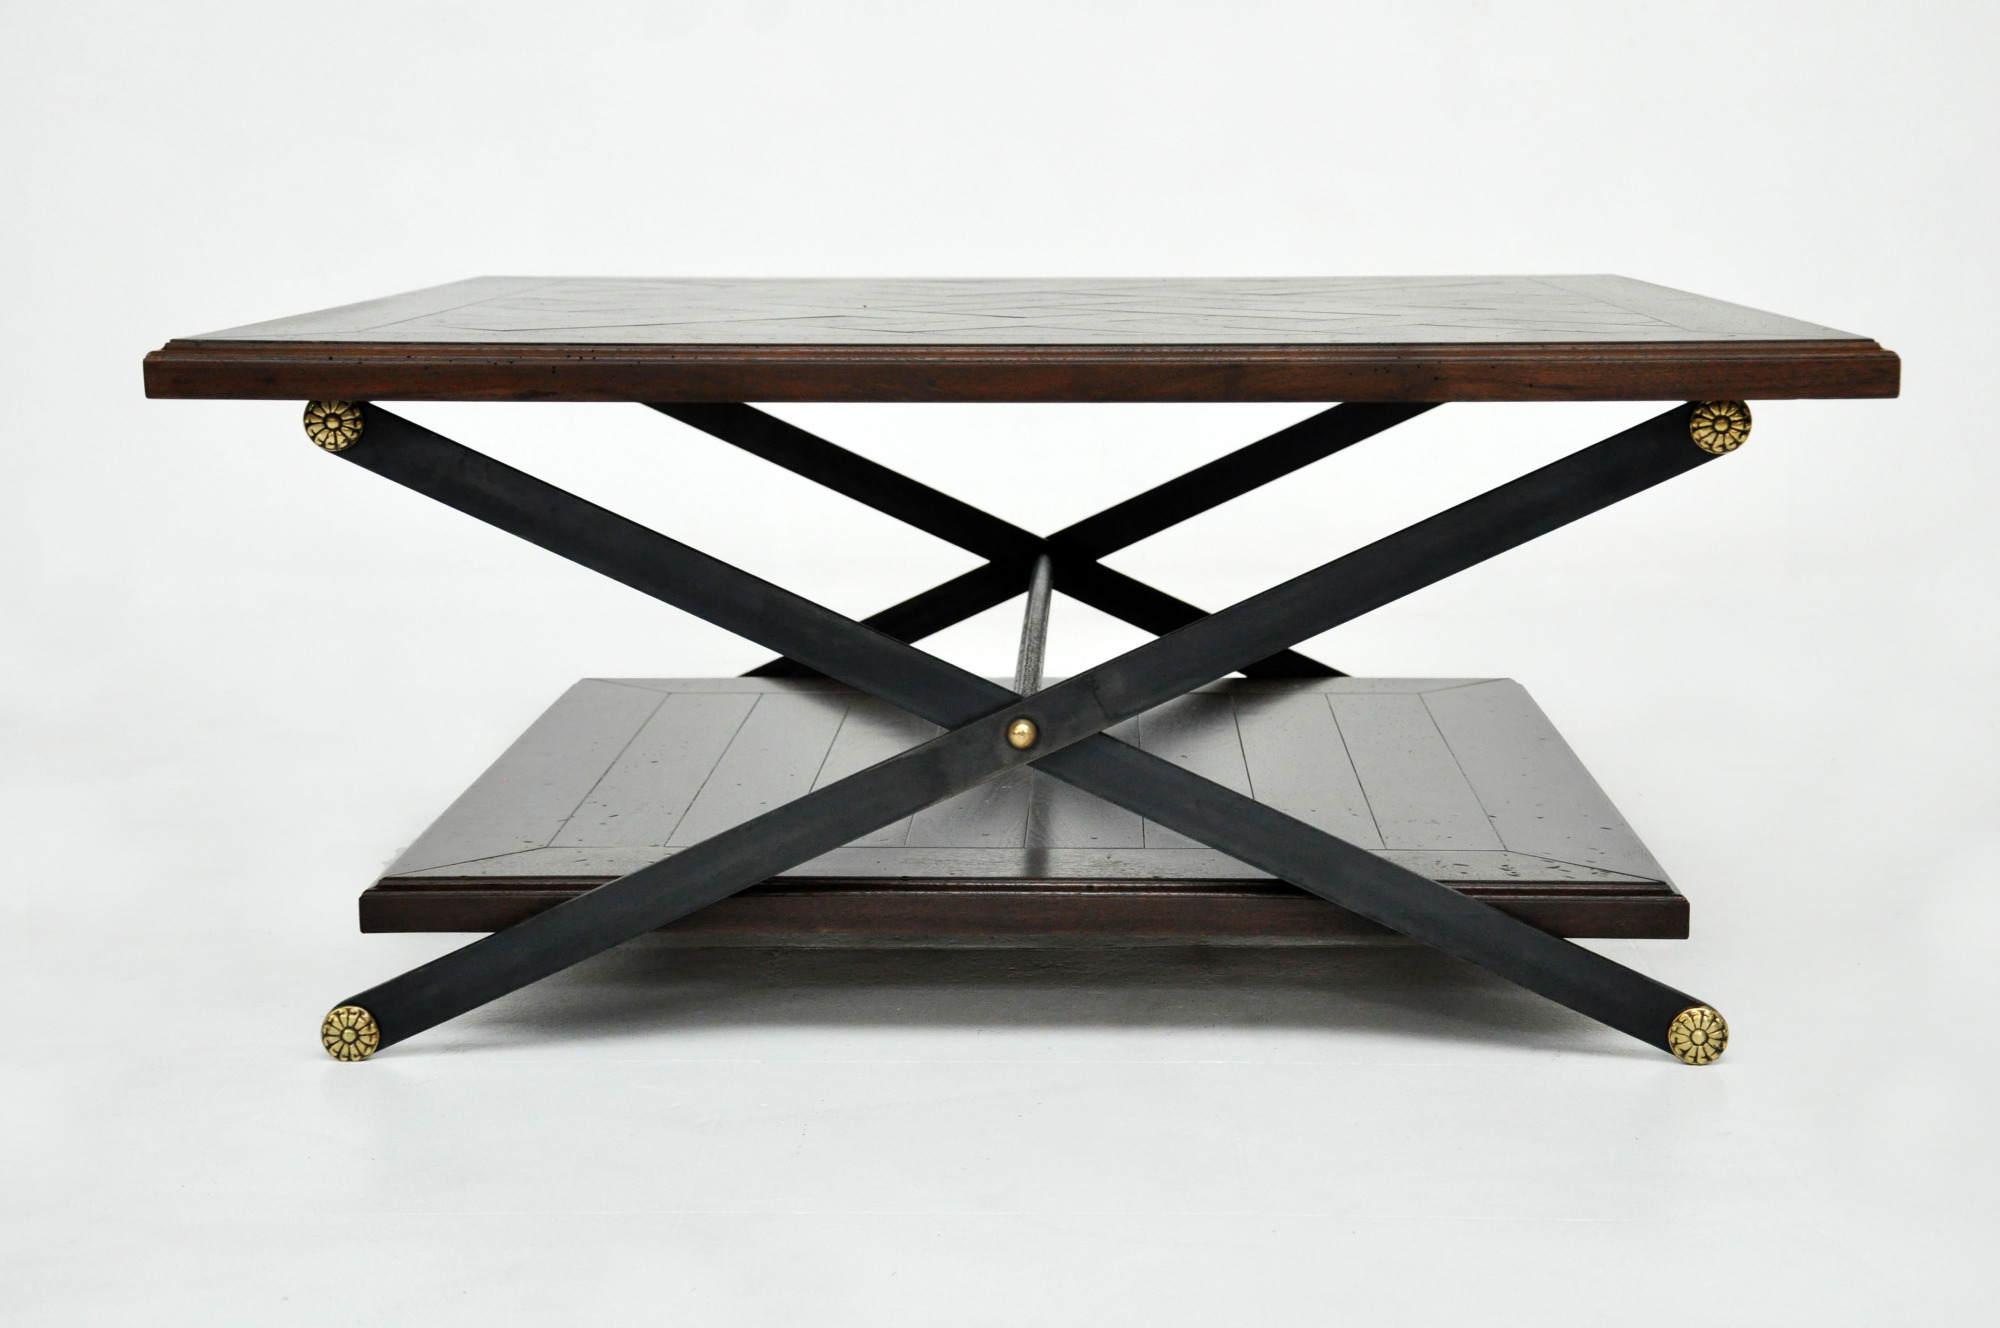 """Chevron 48"""" Coffee Tables With Fashionable Patterned Inlay – Paul Lewin (View 12 of 19)"""